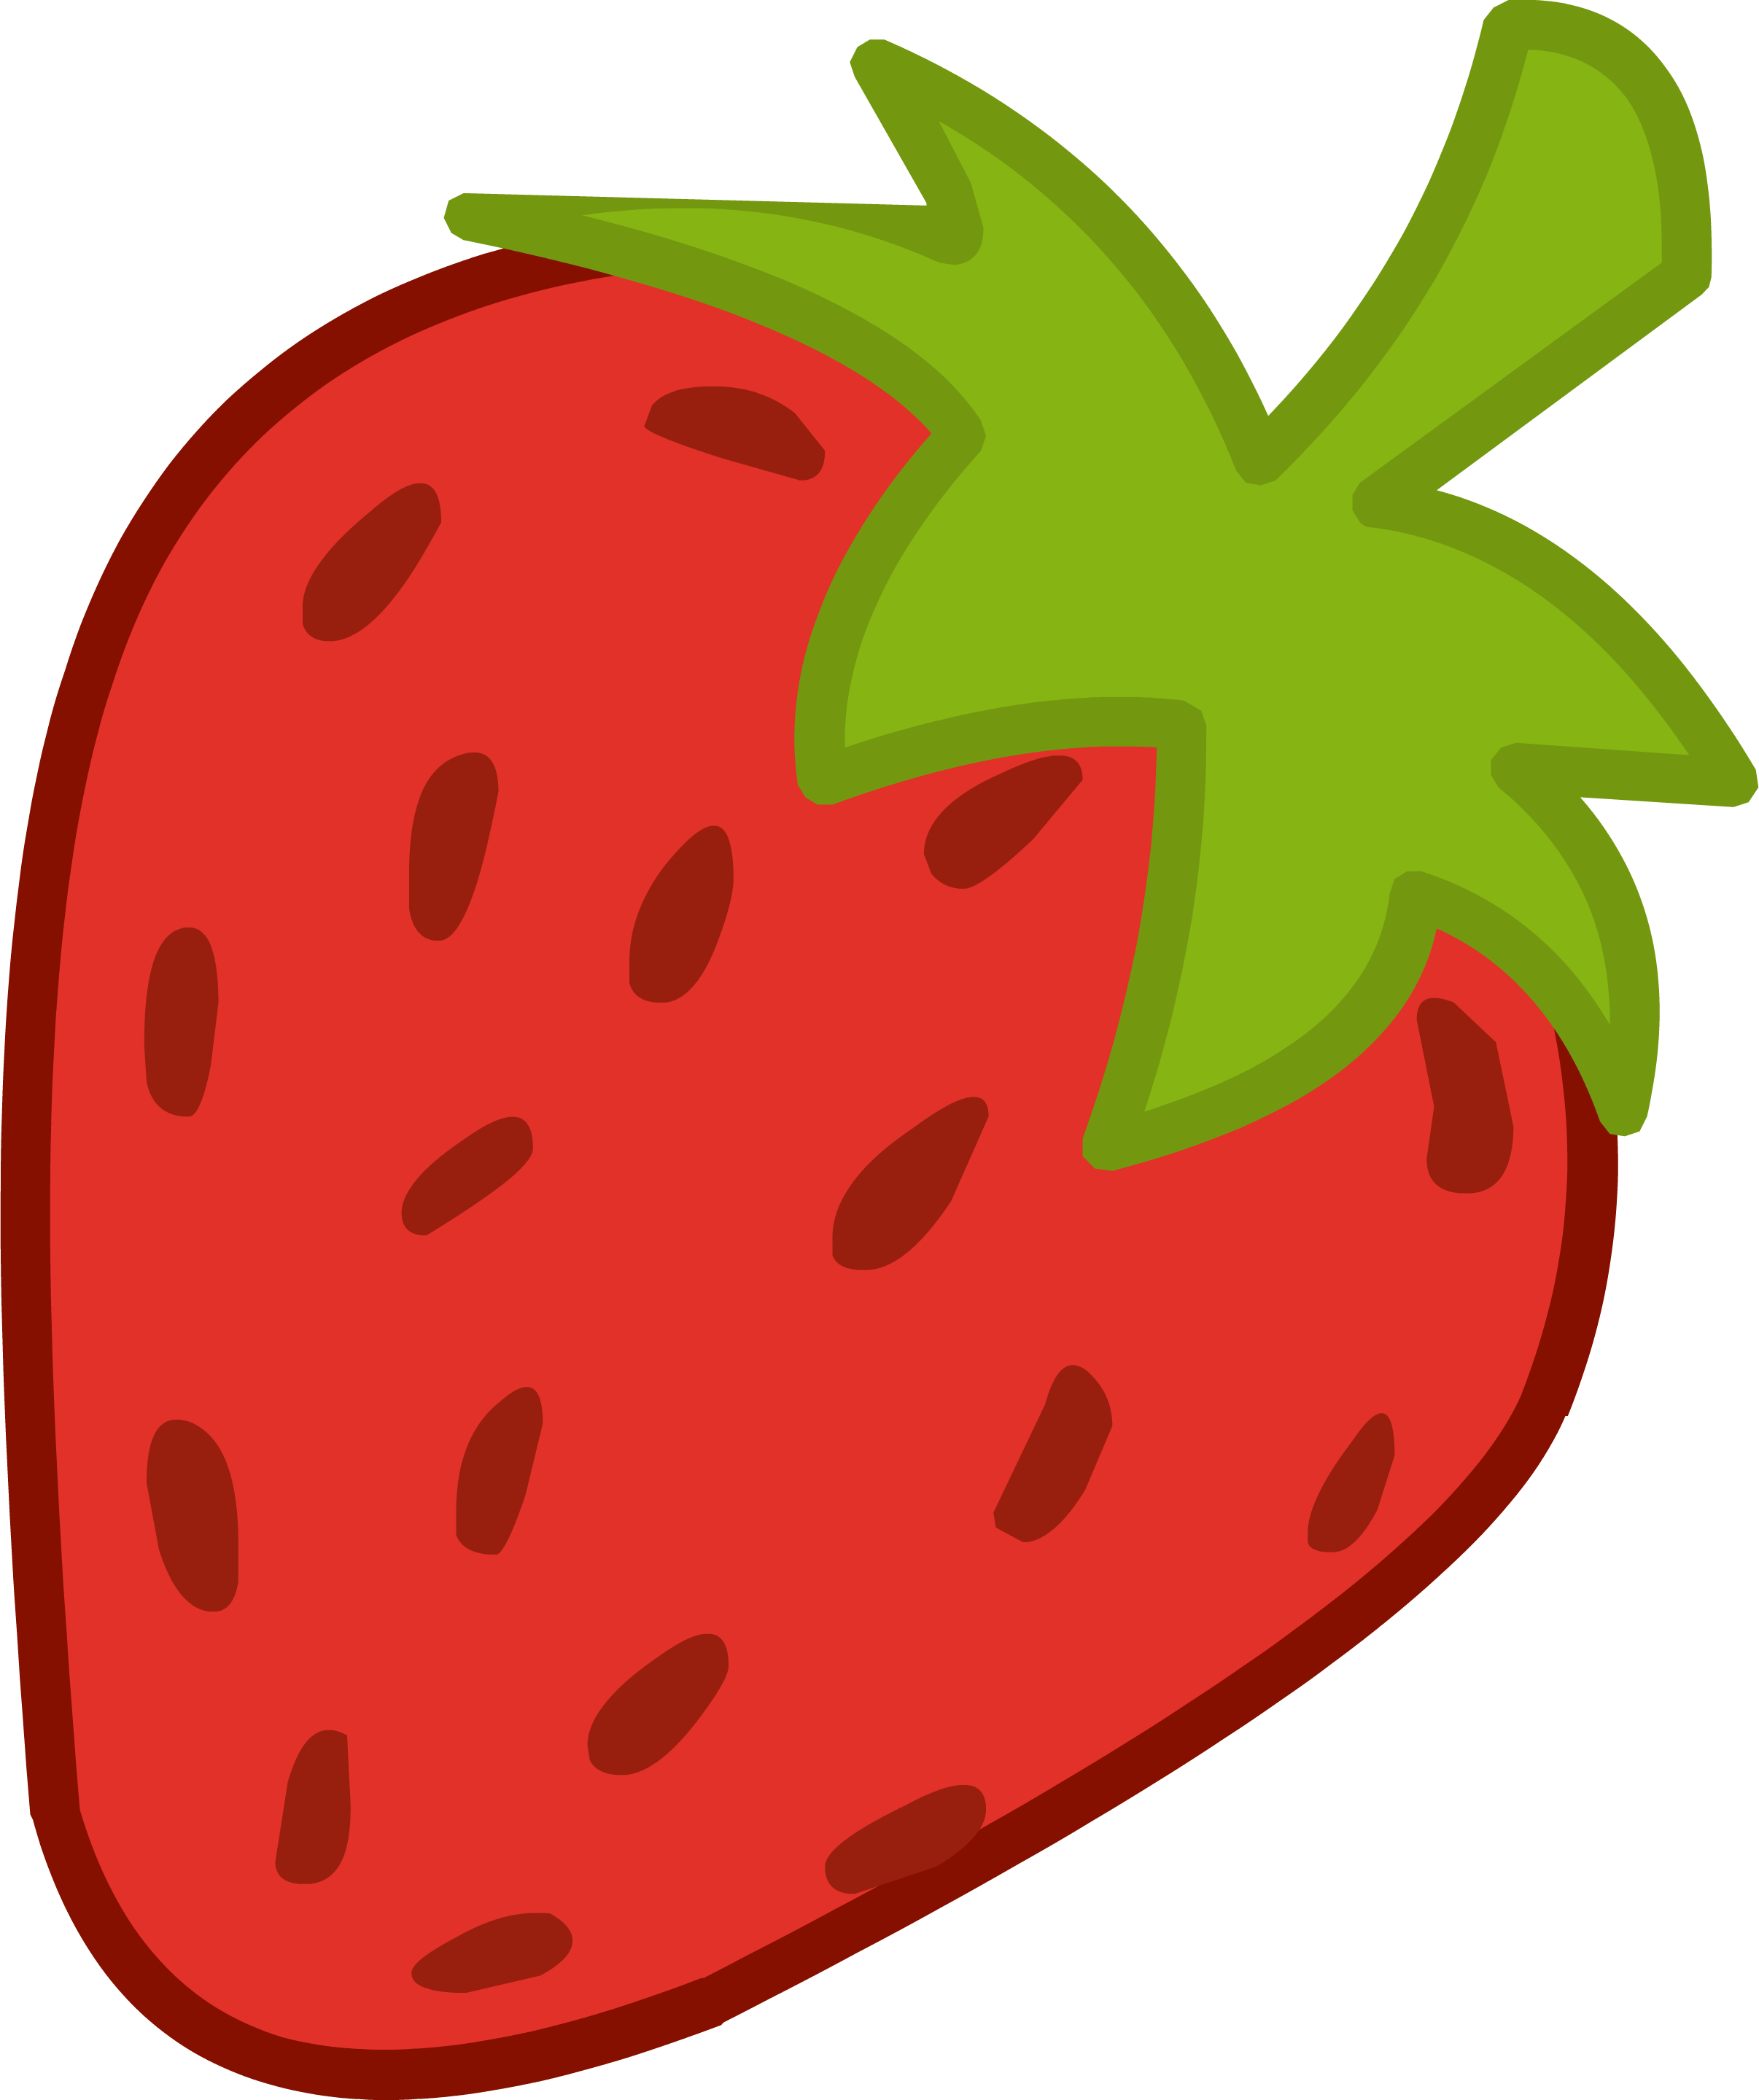 Strawberry images clipart jpg library stock Strawberry Clipart – Gclipart.com jpg library stock